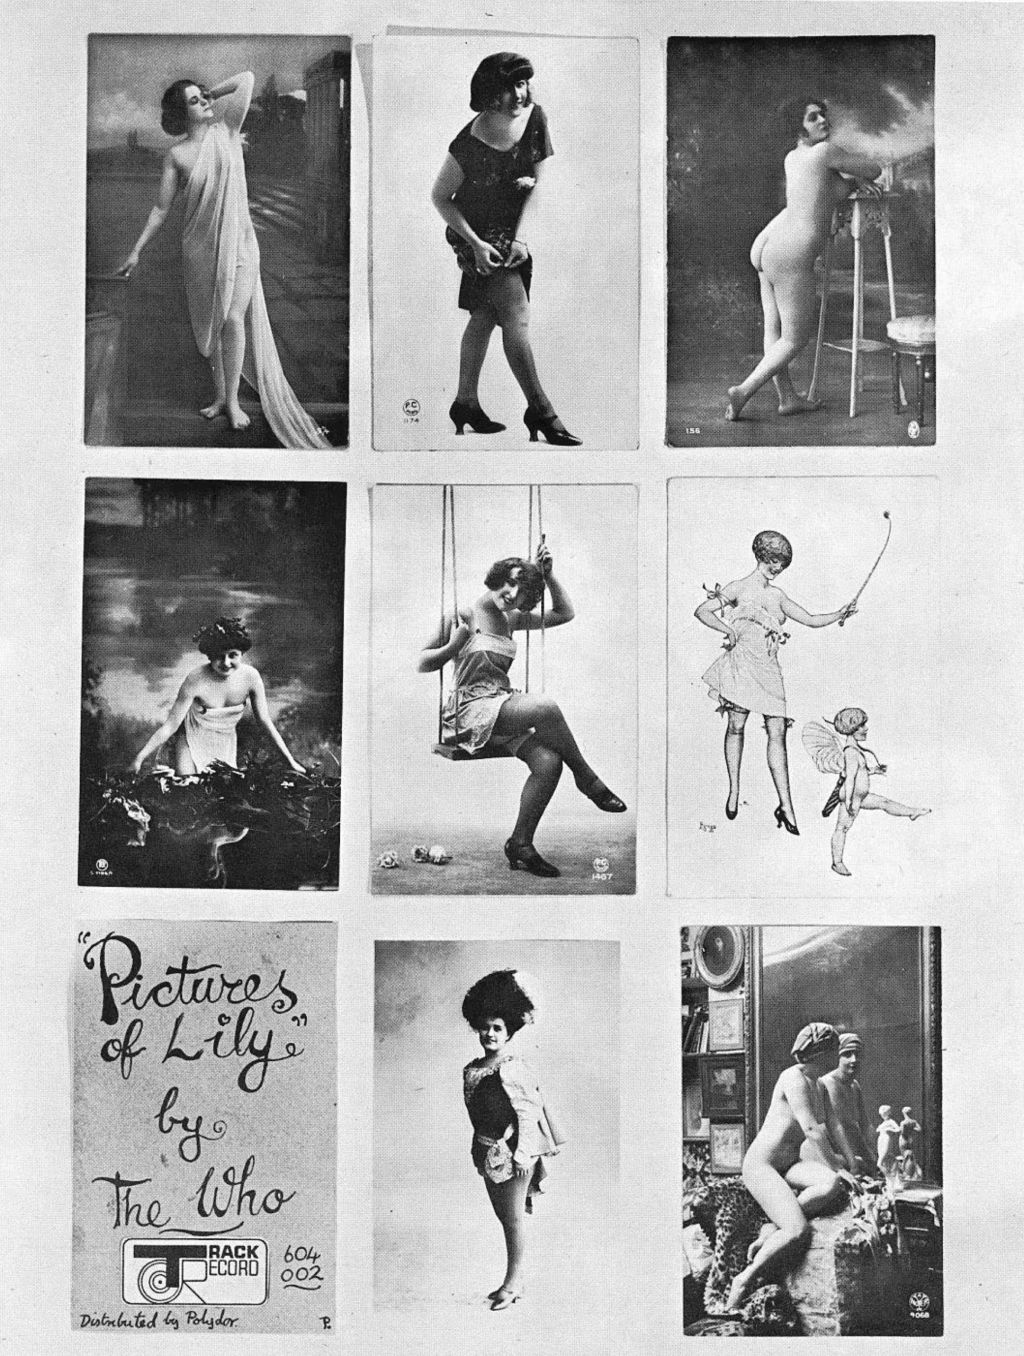 """Ad for """"Pictures of Lily"""" by The Who from the April 22, 1967 issue of New Musical Express magazine"""